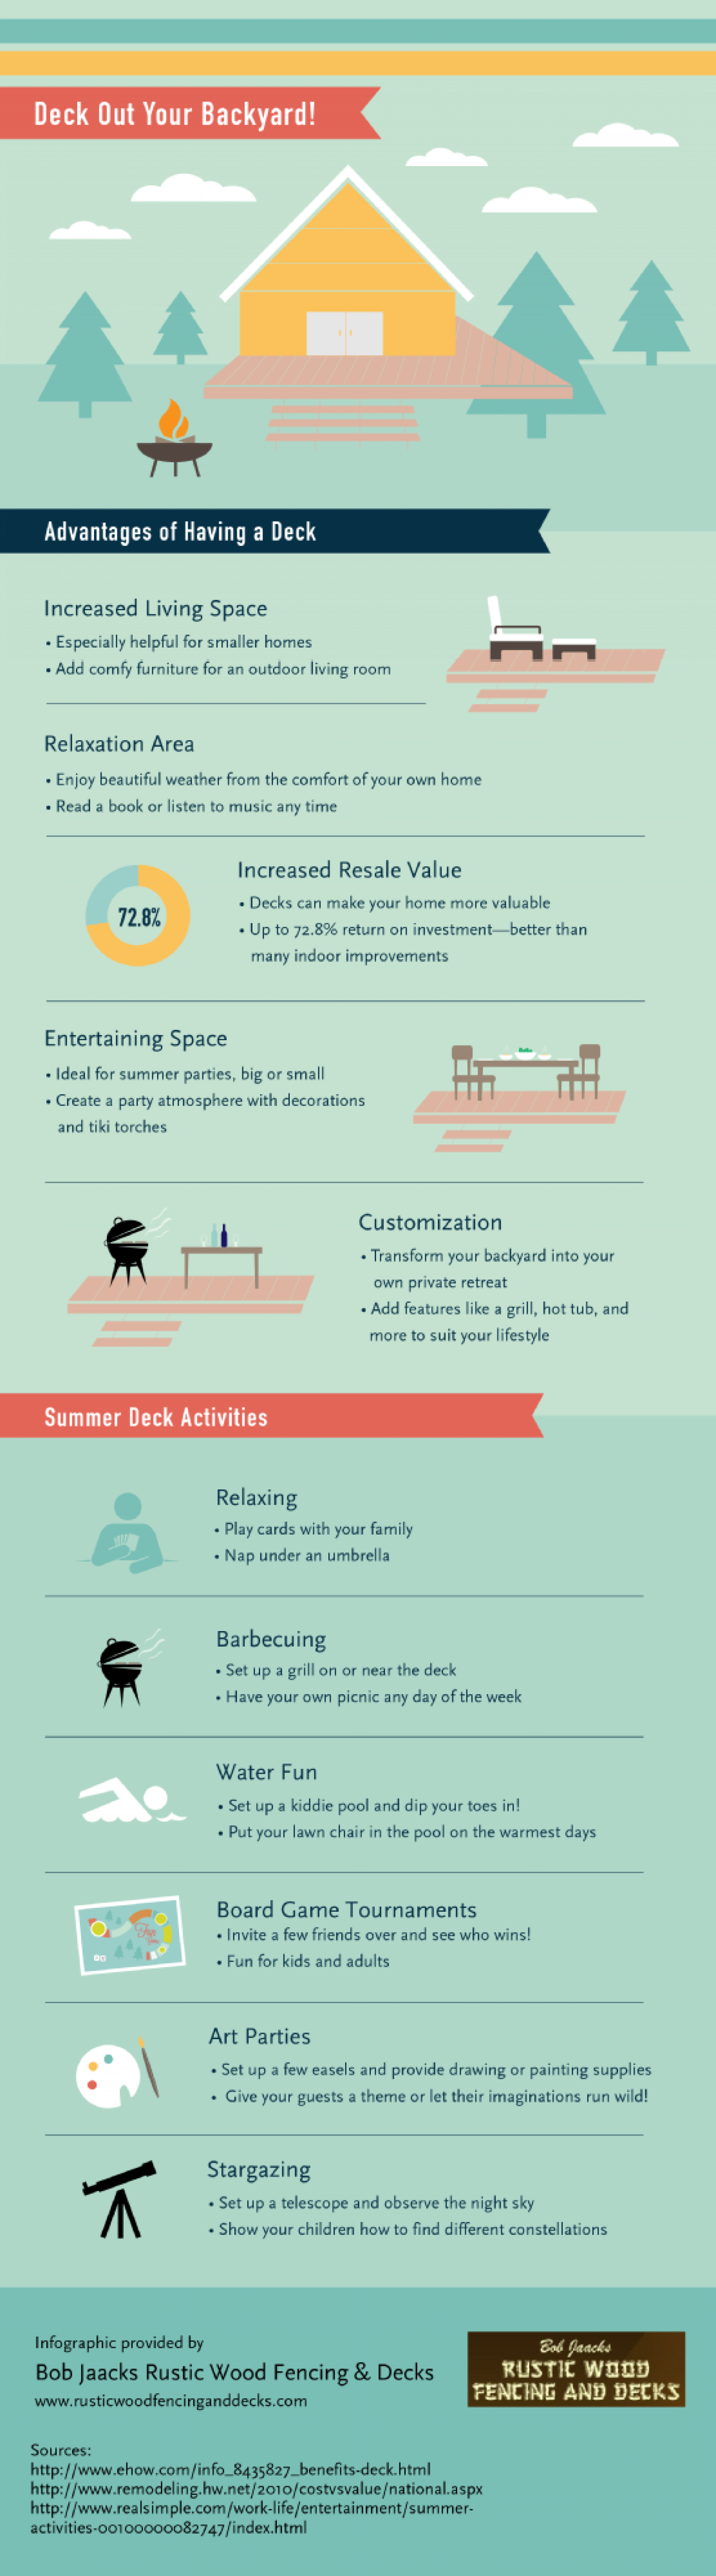 Deck Out Your Backyard! Infographic